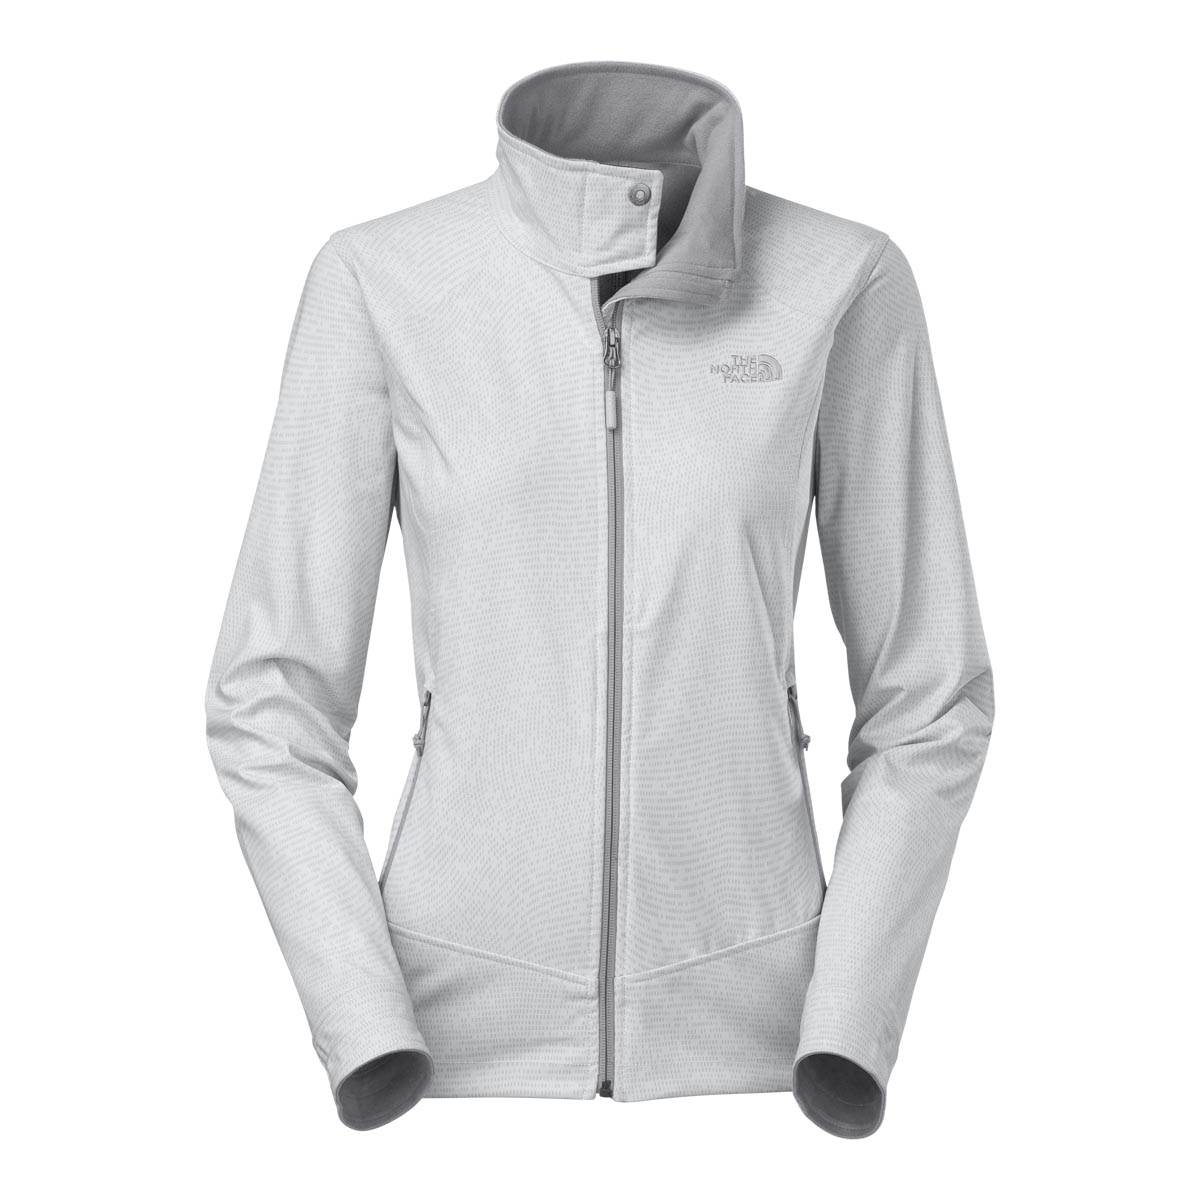 The North Face Women's Calentito 2 Jacket Discontinued Pricing